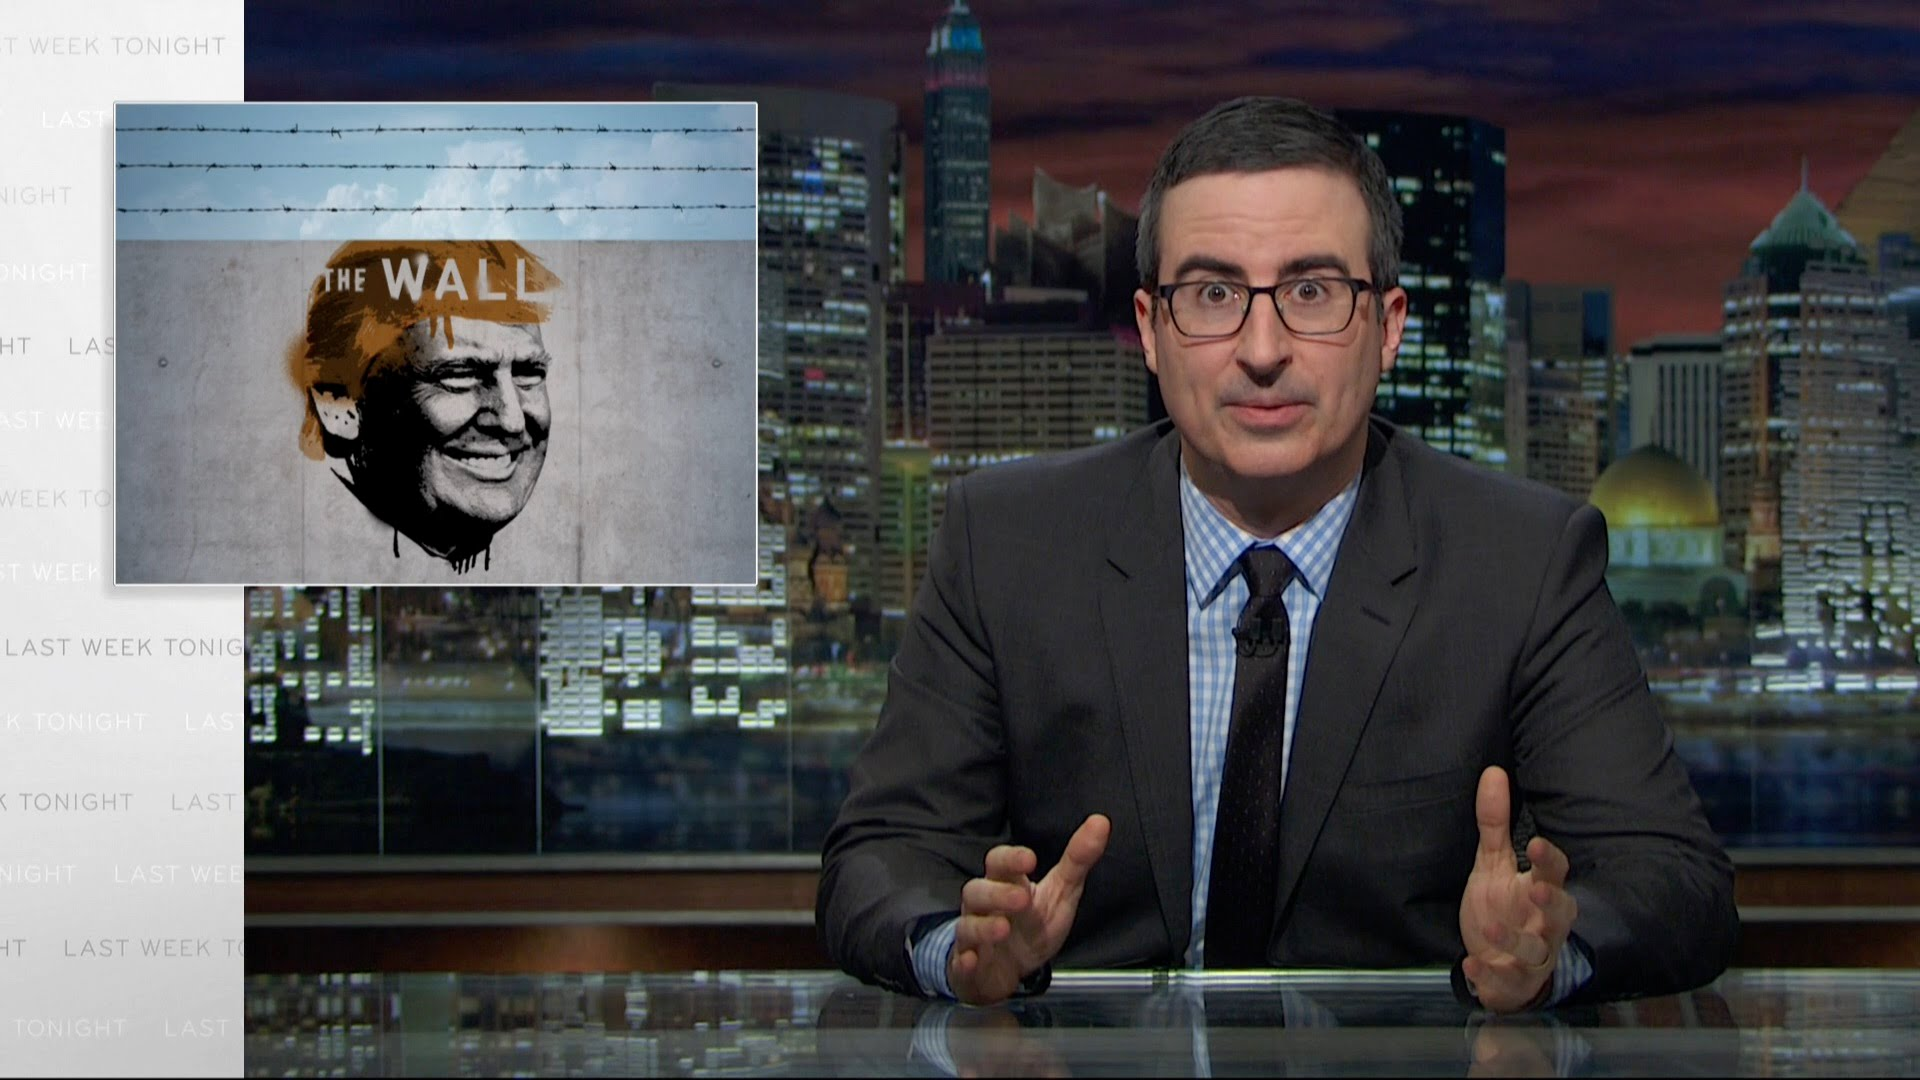 With no Colbert/Daily Show in the mix, John Oliver is the frontrunner to win his first Emmy